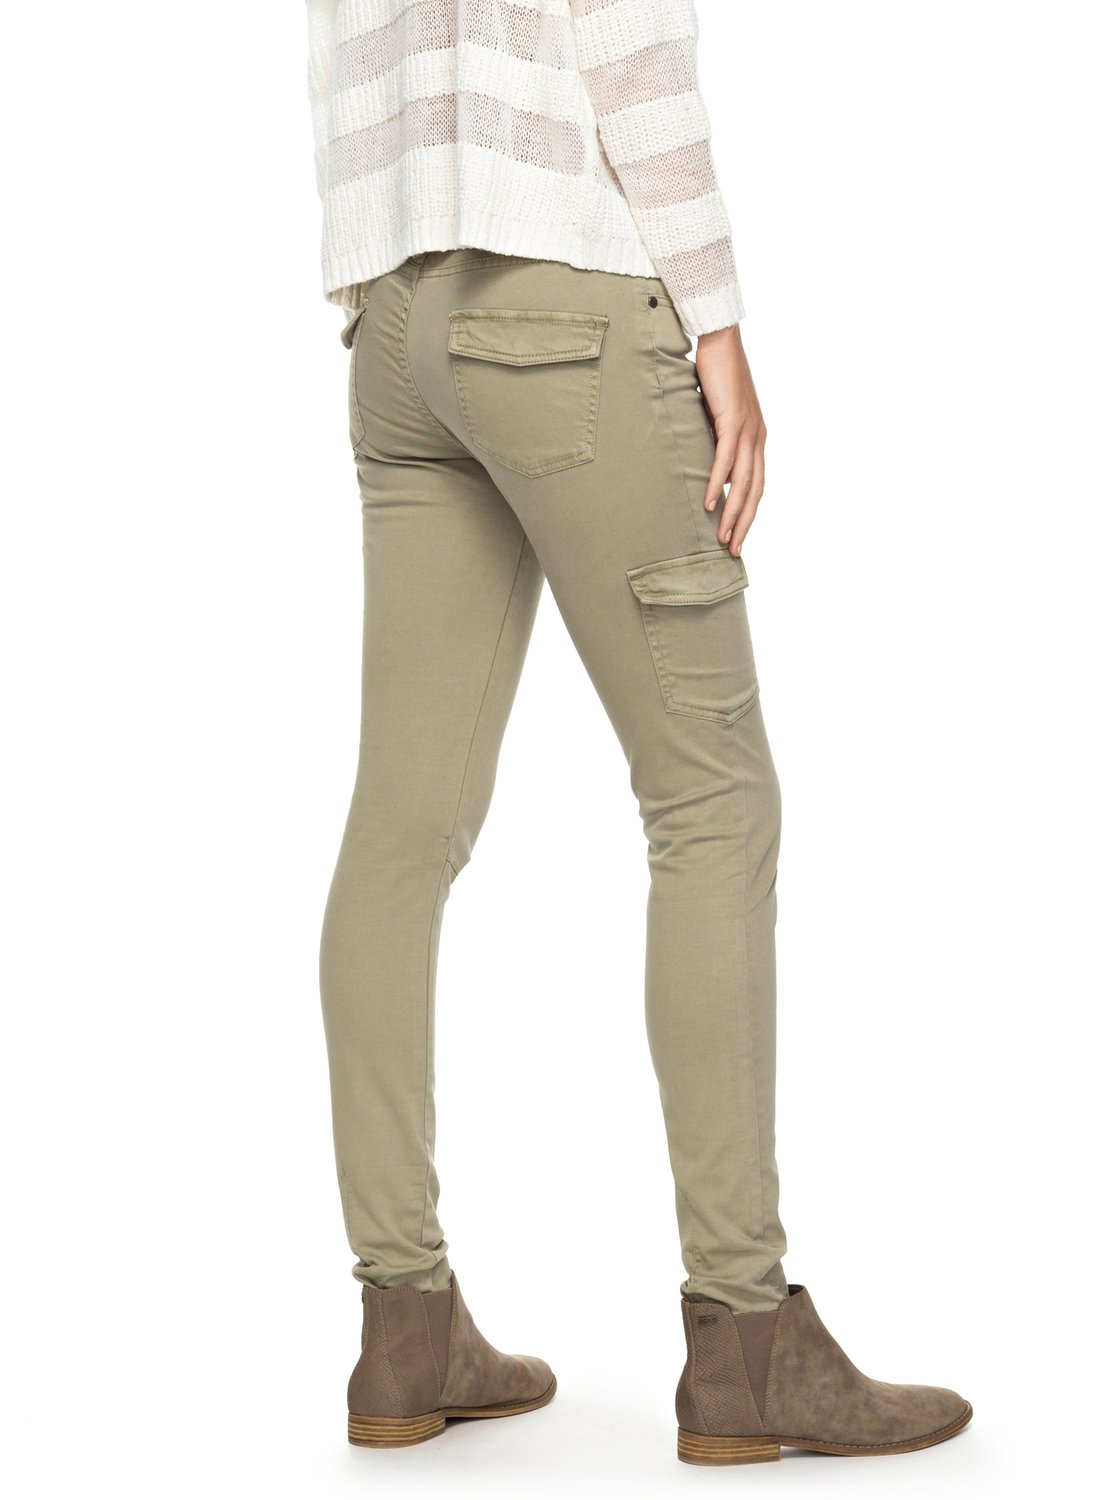 Free shipping on skinny pants for women at downiloadojg.gq Shop for skinny trousers, ankle pants, sweatpants and more in the latest colors and prints. Enjoy free shipping and returns.